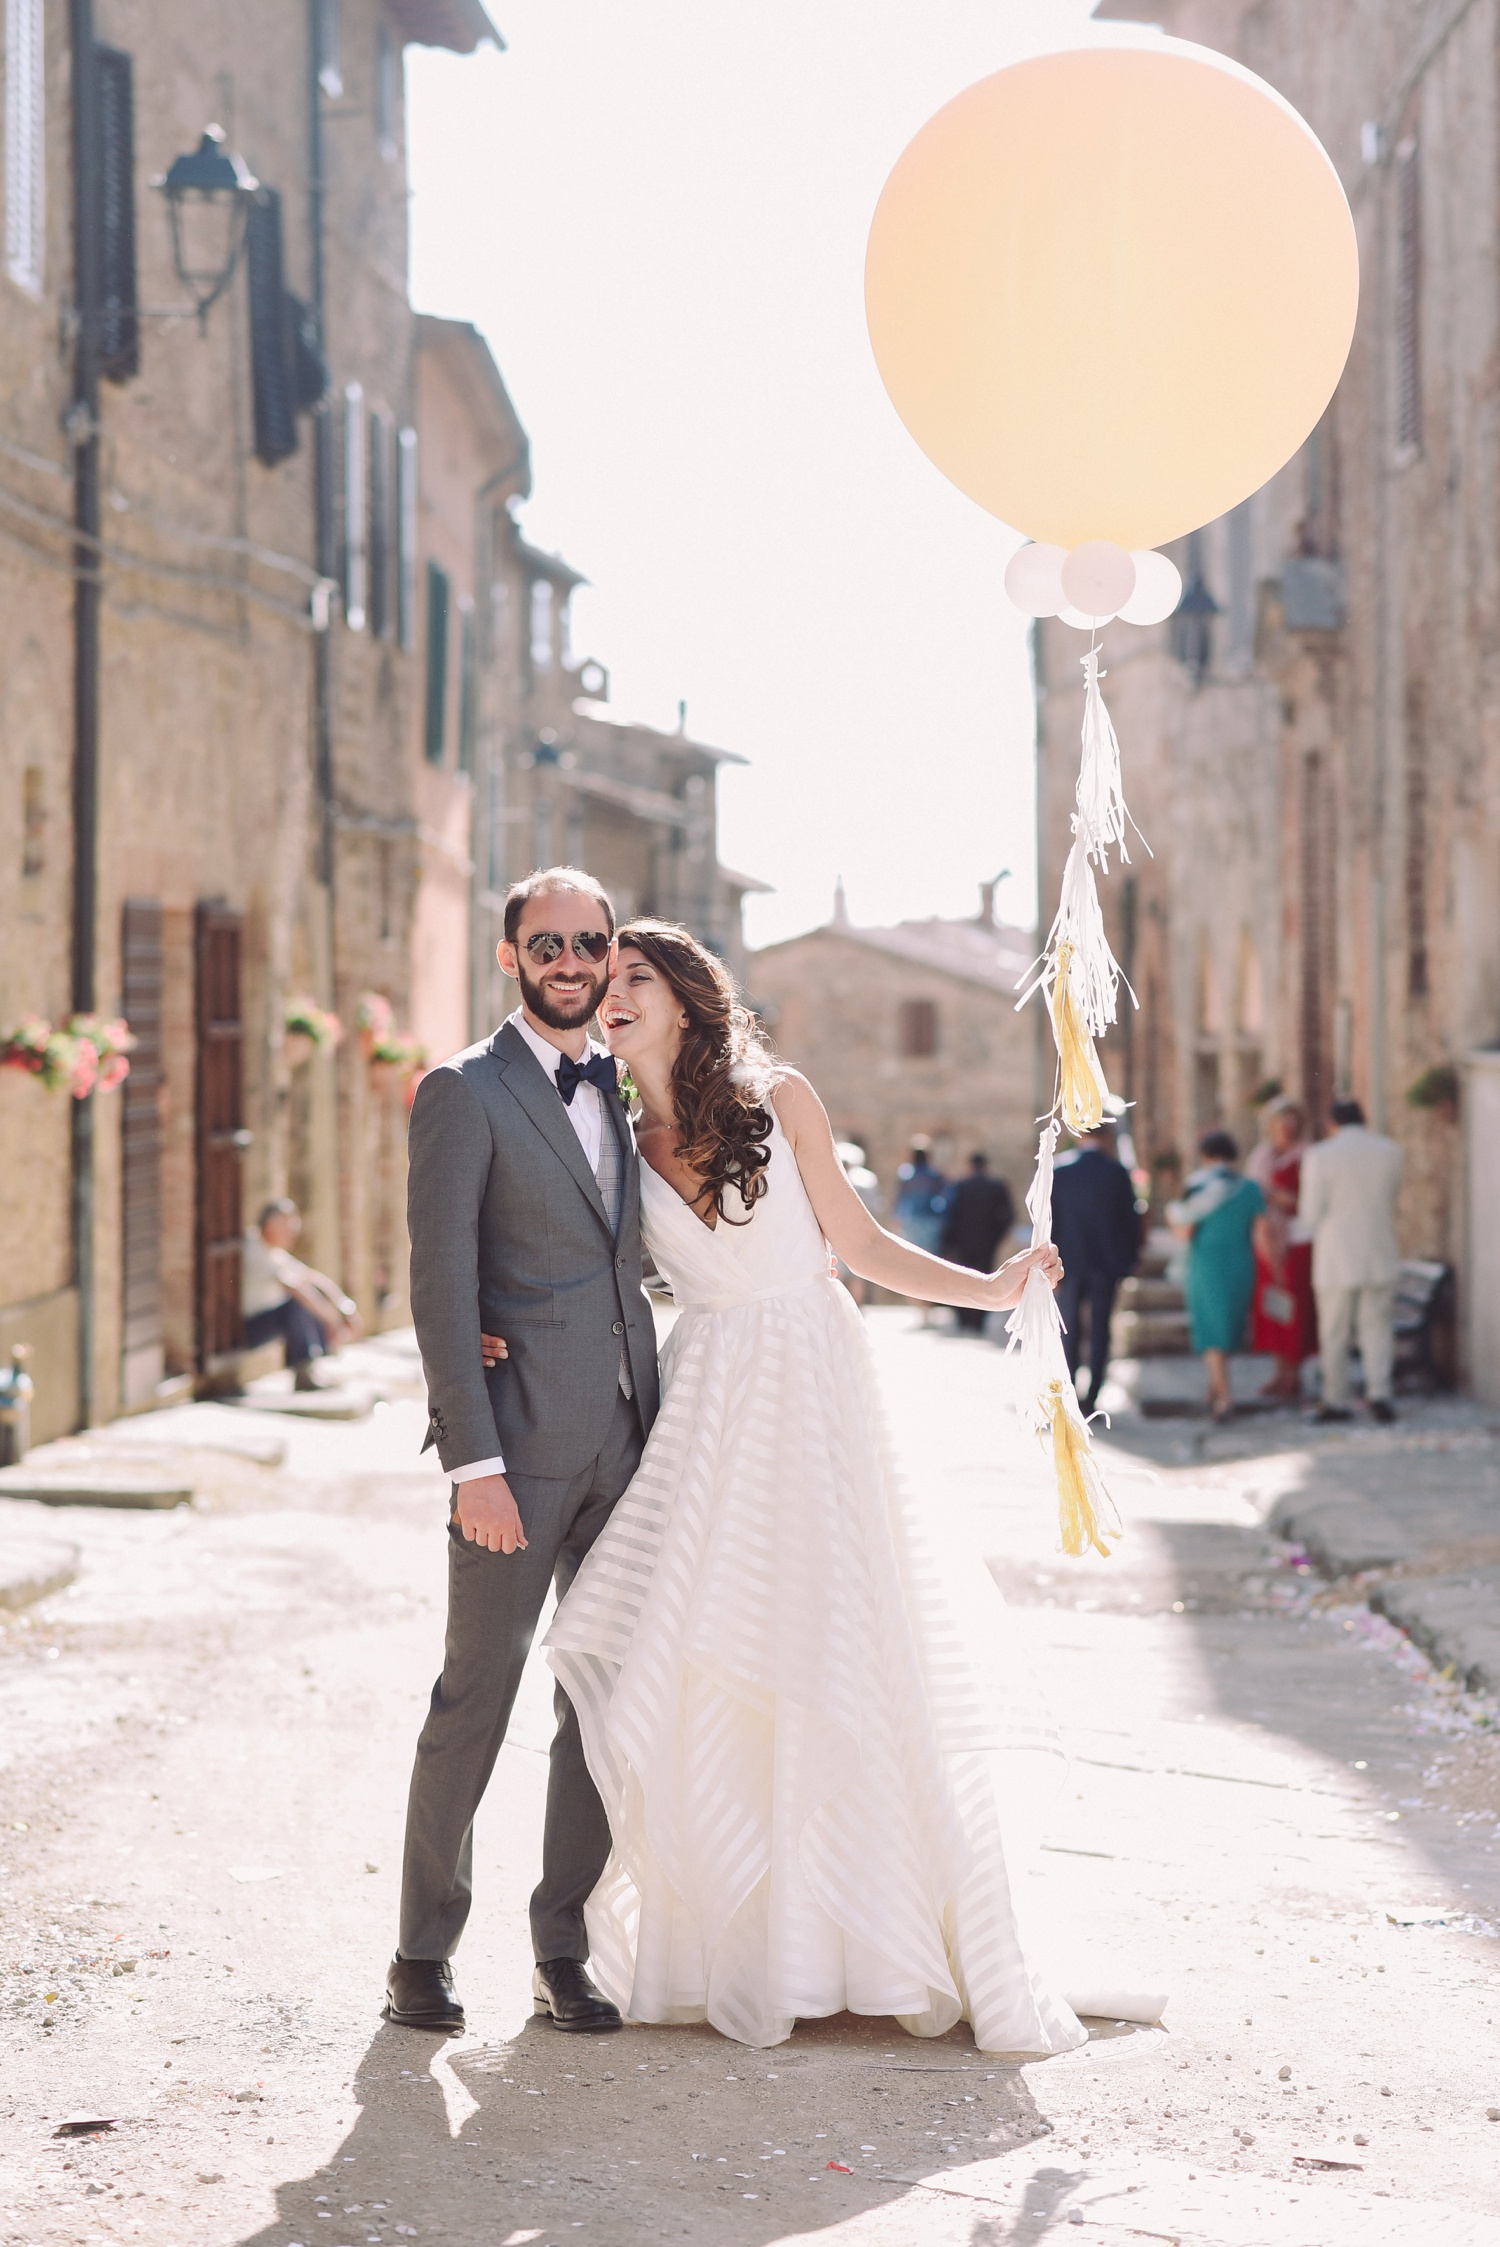 landvphotography-wedding-photographer-tuscany_1881.jpg